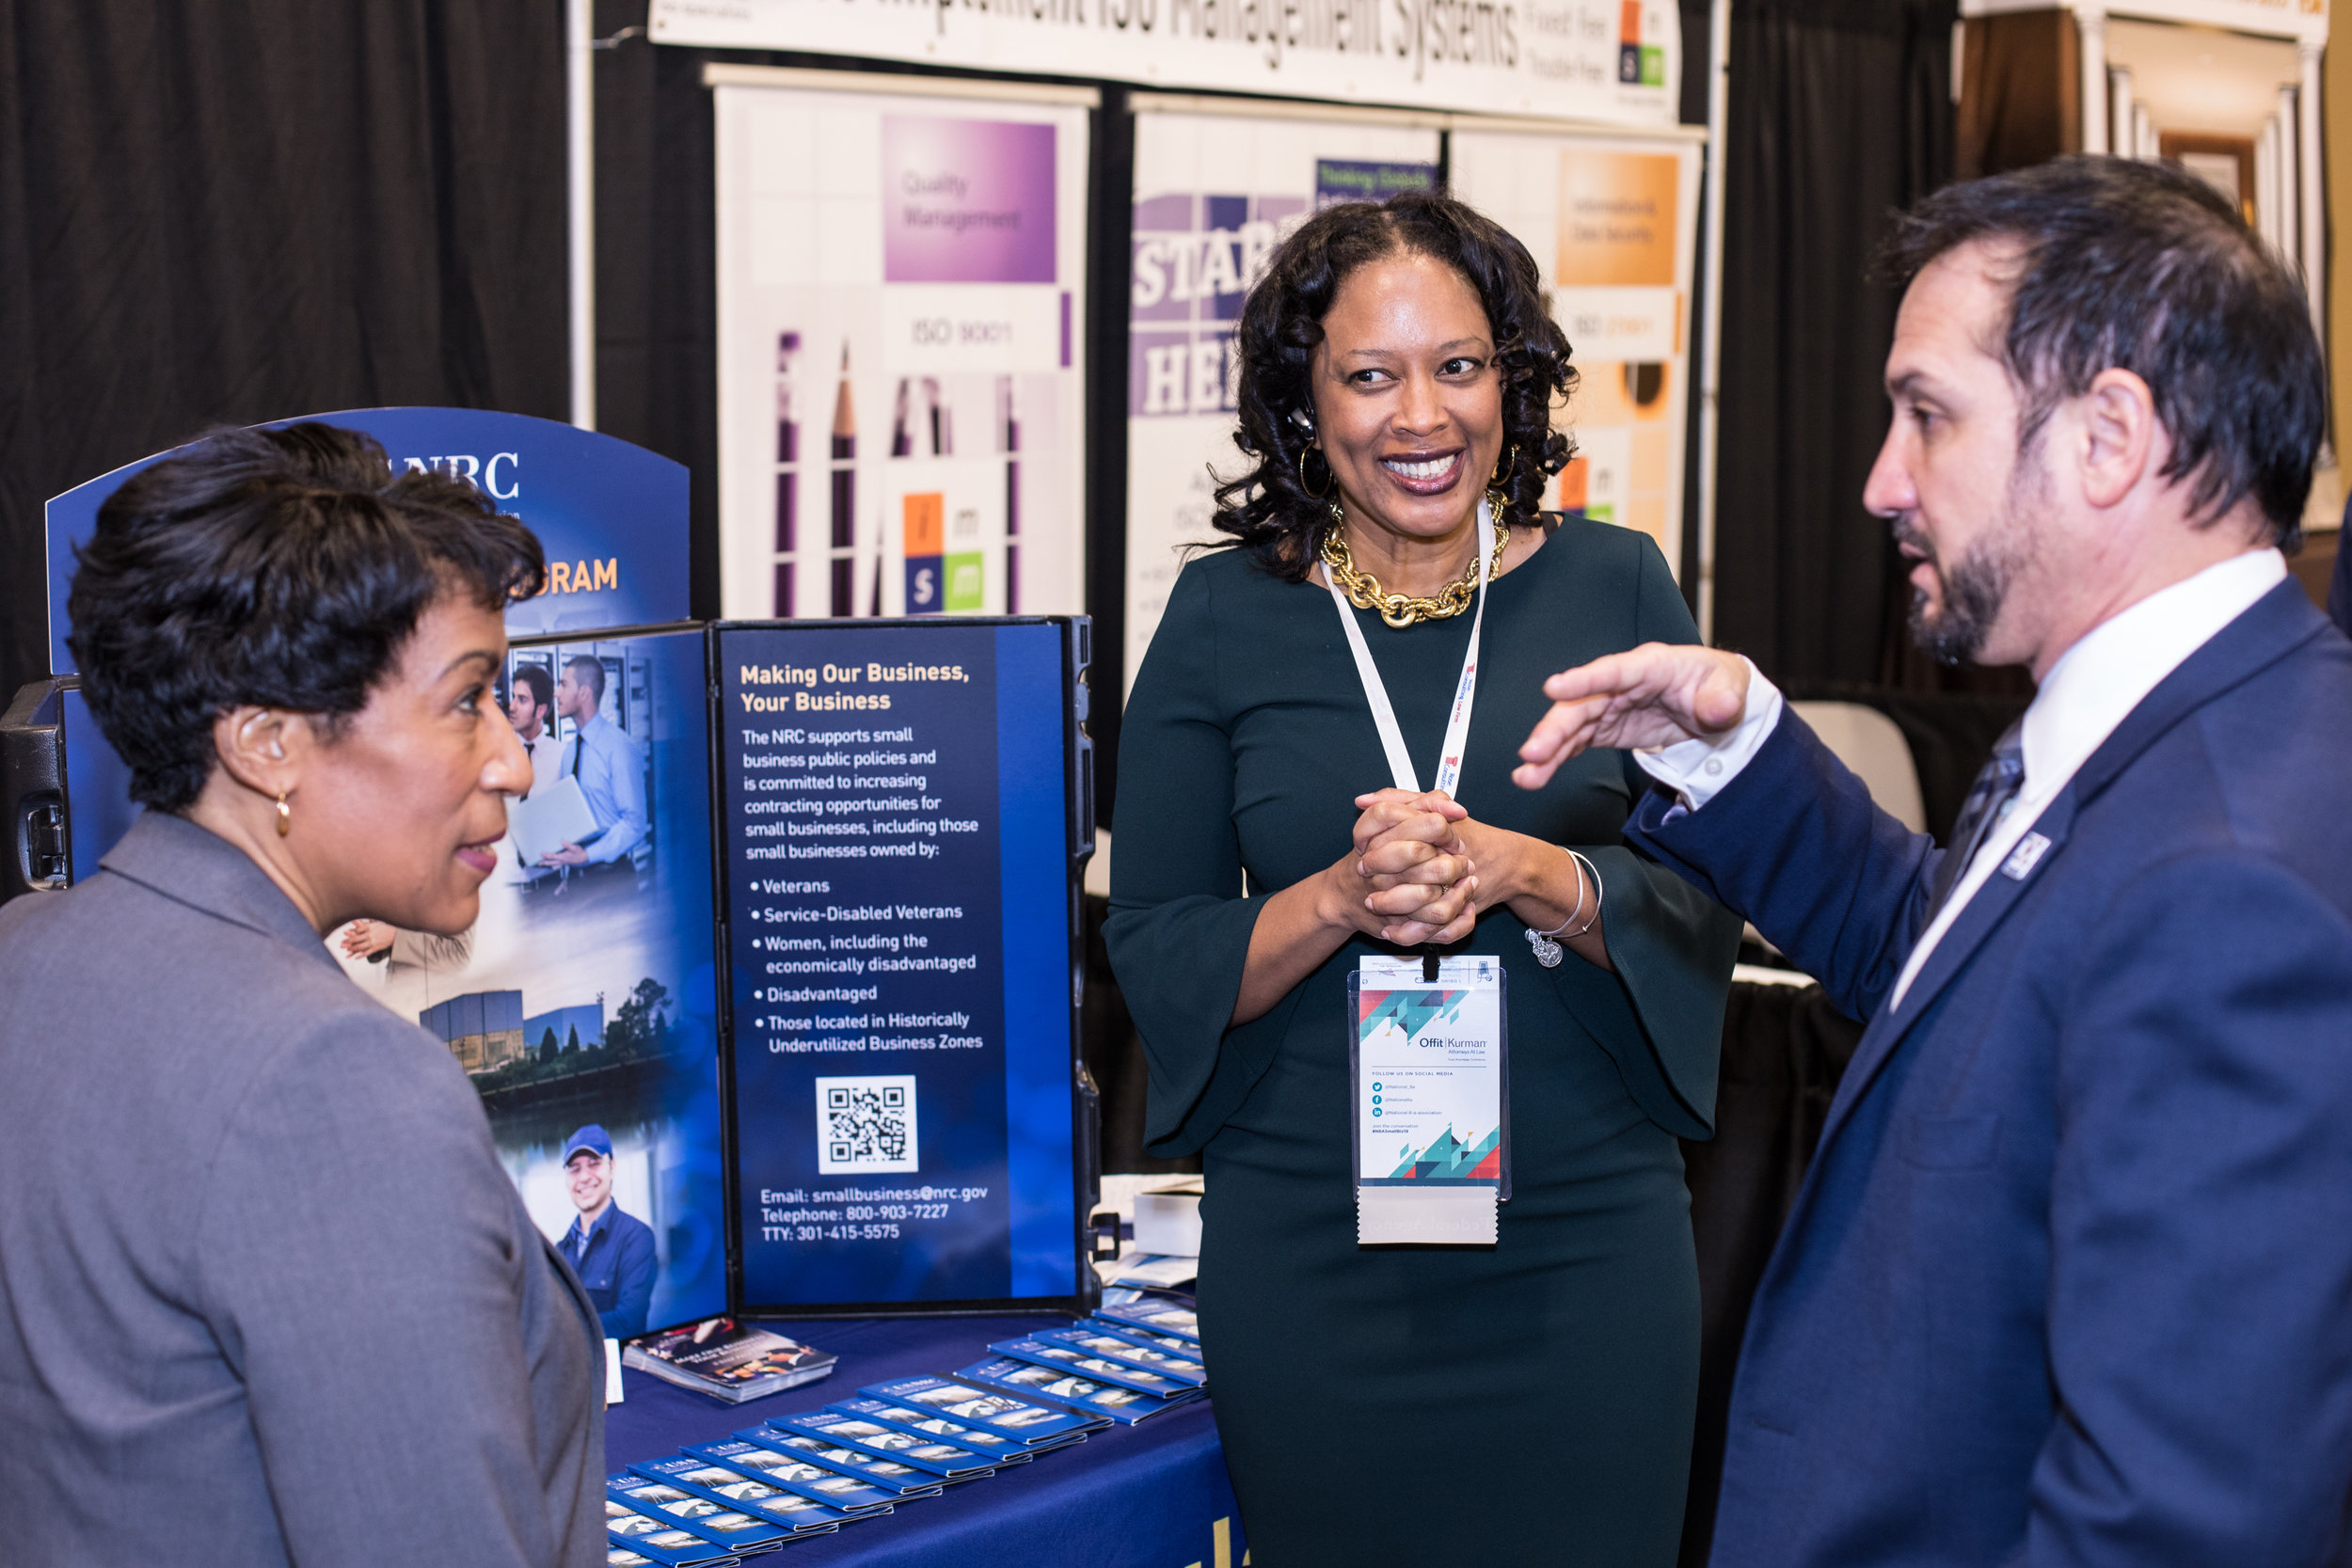 Exhibit - Showcase your business by exhibiting - Less than five spots remain so book today!